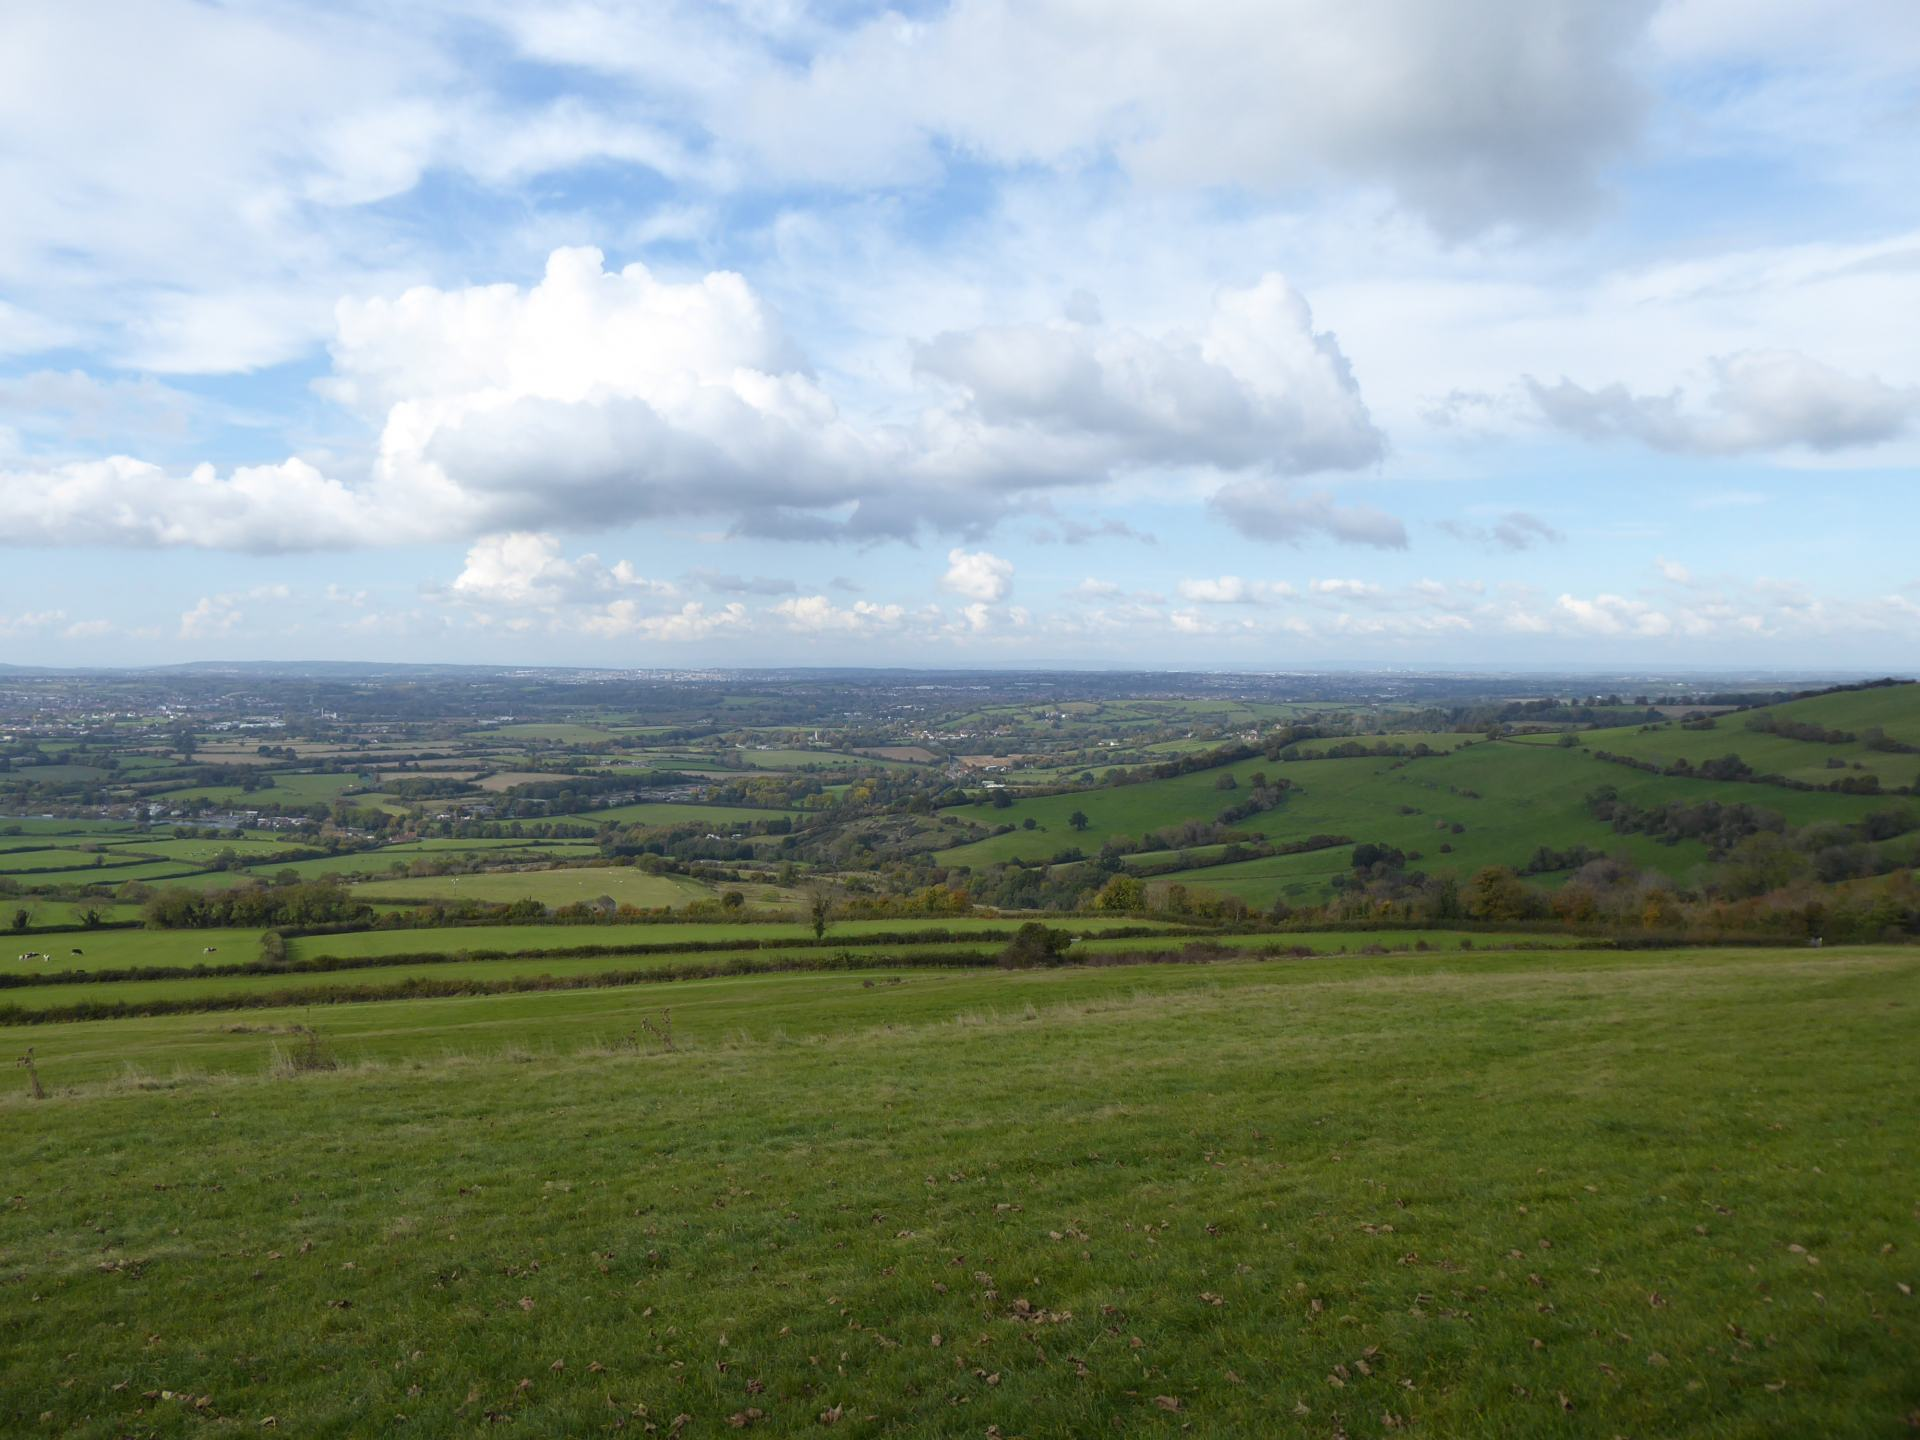 The view from Kelston Round Hill showing green fields with Bristol in the distance, and clouds above.